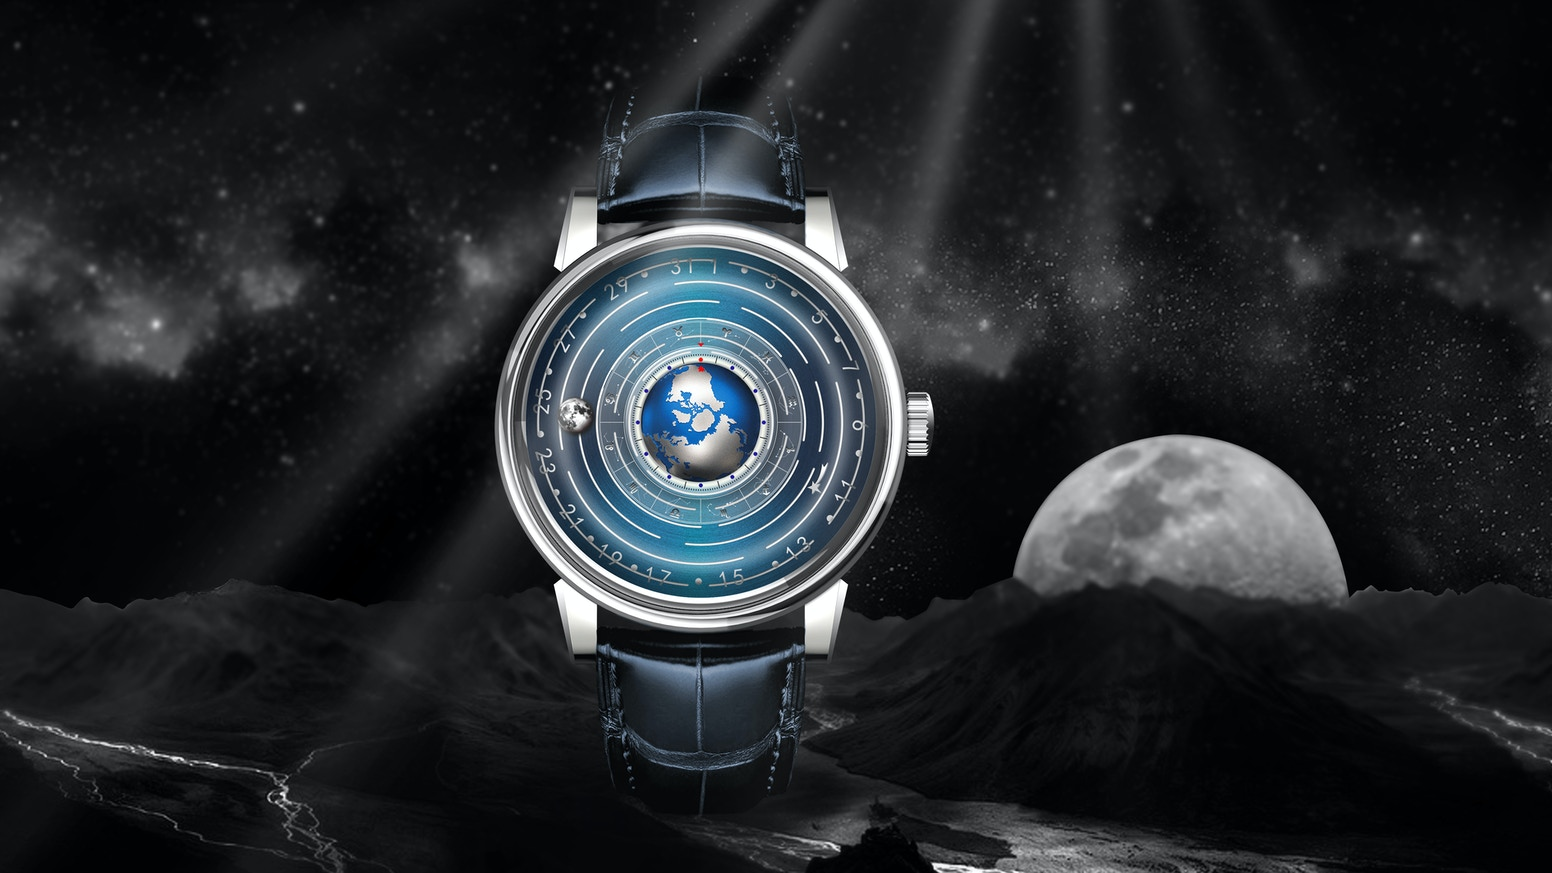 You will get a mechanical watch quite different from the traditional one, related to the rotation of Earth and Moon.